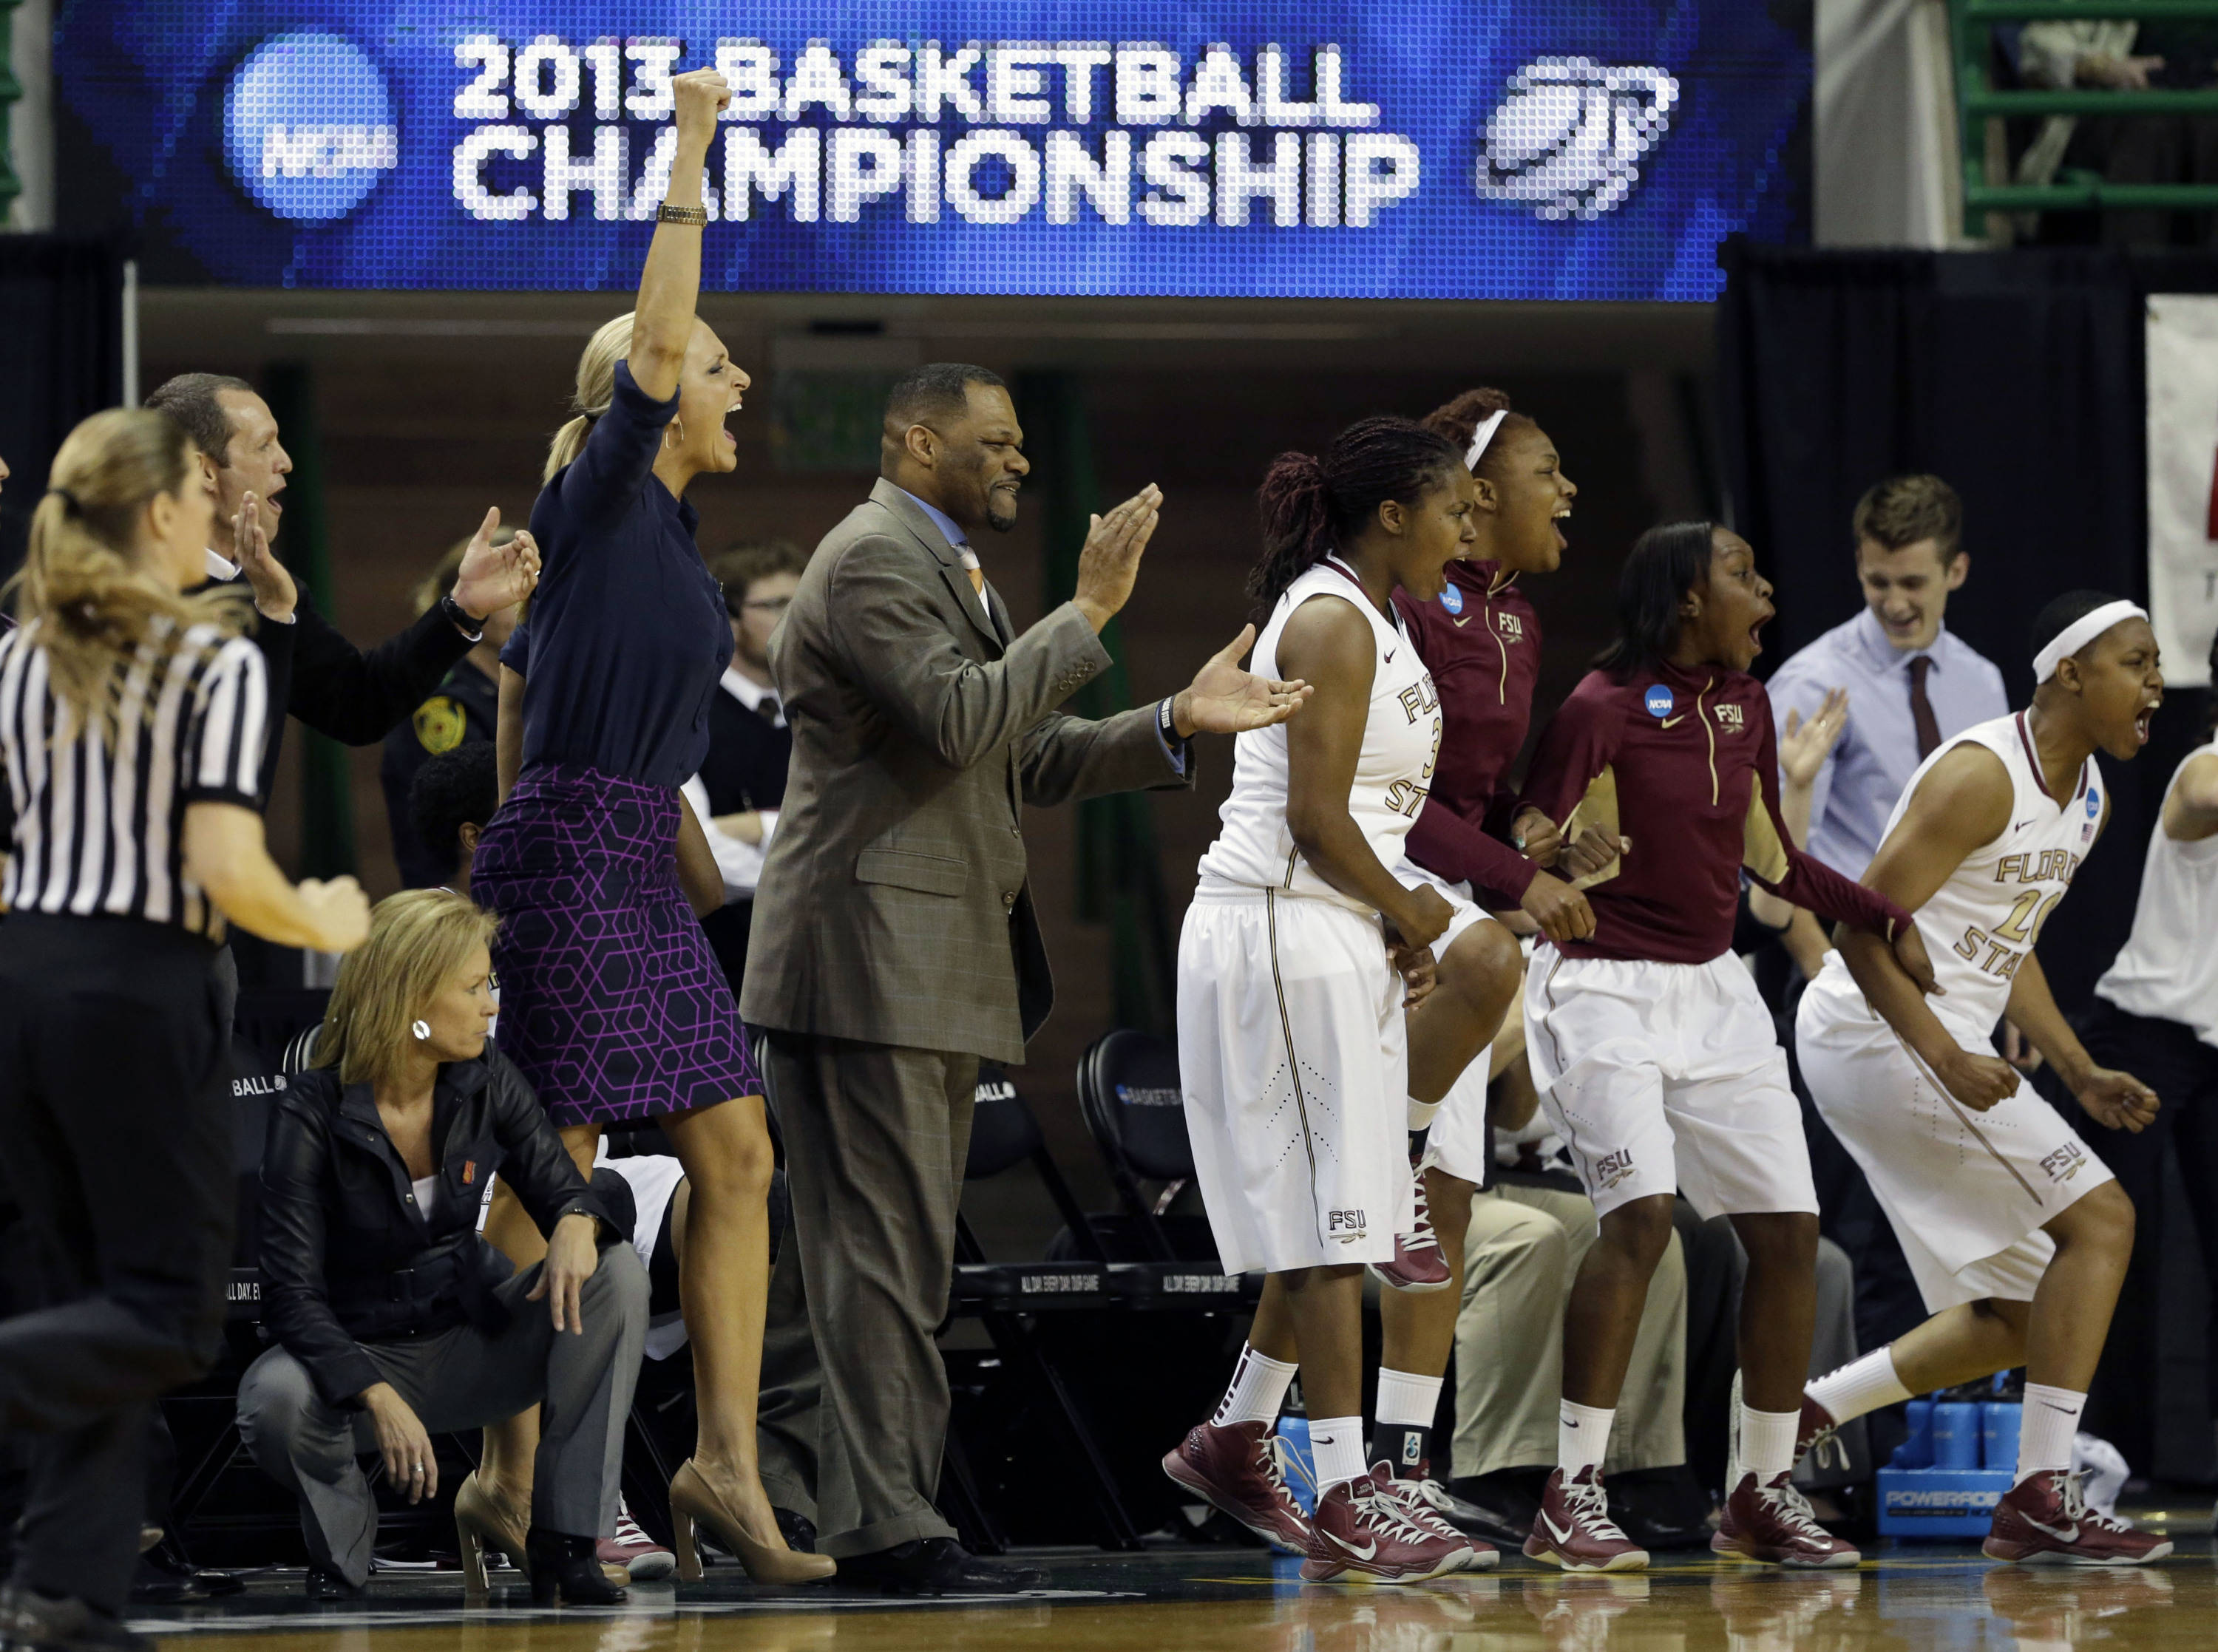 The Florida State bench celebrates a score late in the second half. (AP Photo/Tony Gutierrez)